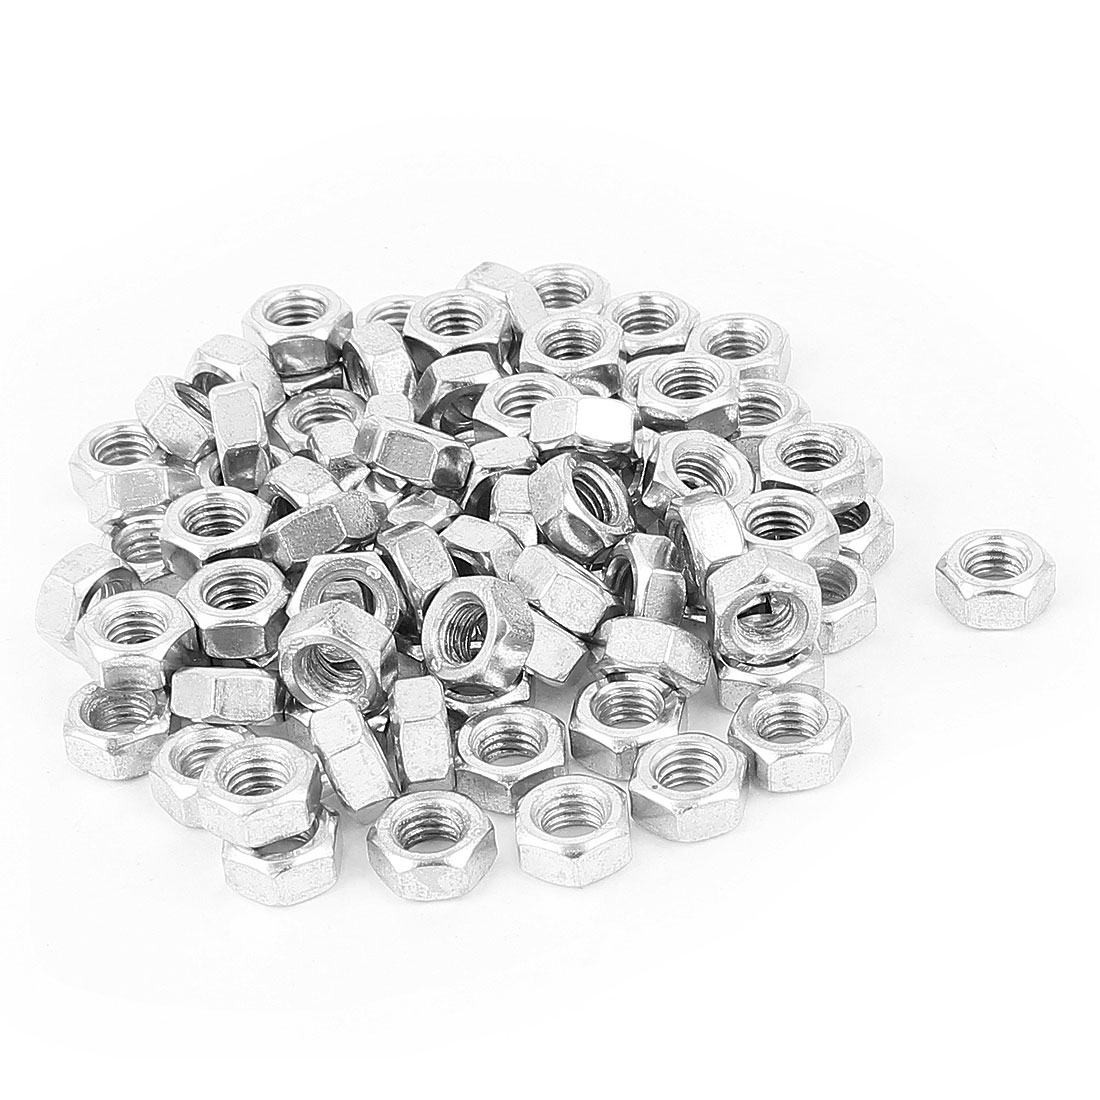 86 Pcs Metric M8 Hex Nuts Metal Fasteners for Screw Bolt